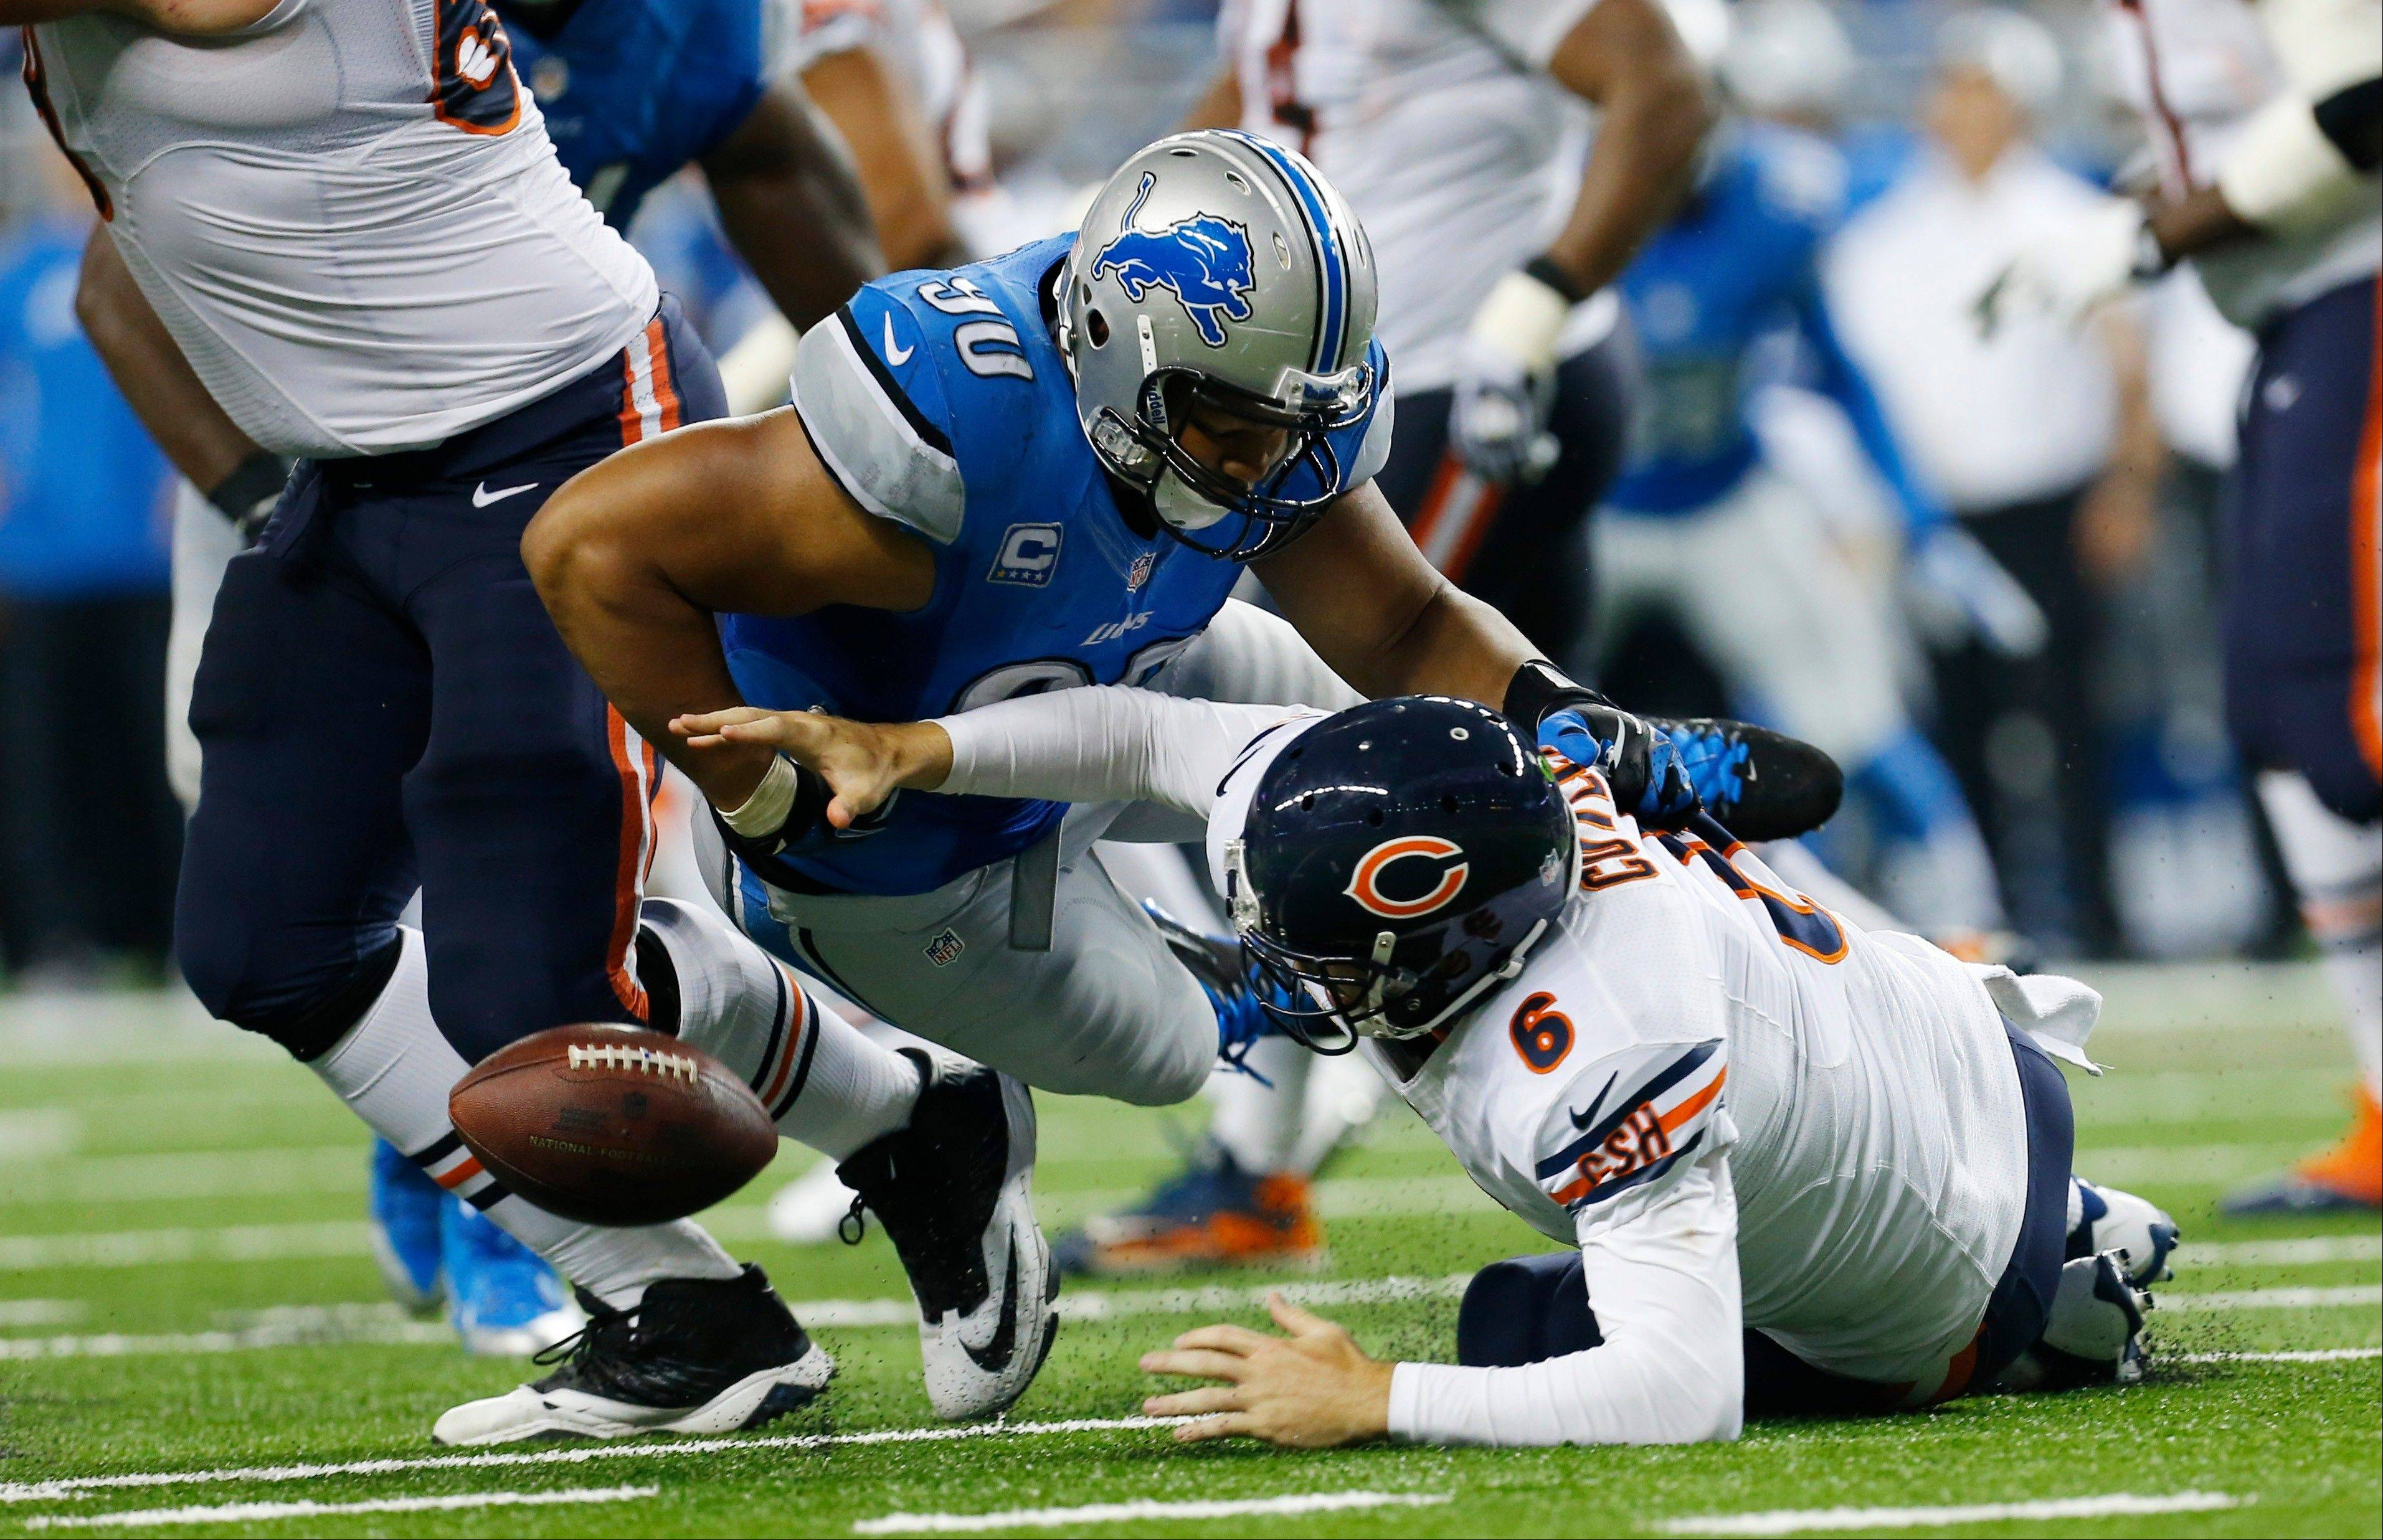 Bears quarterback Jay Cutler fumbles after behing hit by the Lions� Ndamukong Suh in the third quarter Sunday. The Lions� Nick Fairley recovered the ball and returned it 4 yards for a touchdown.